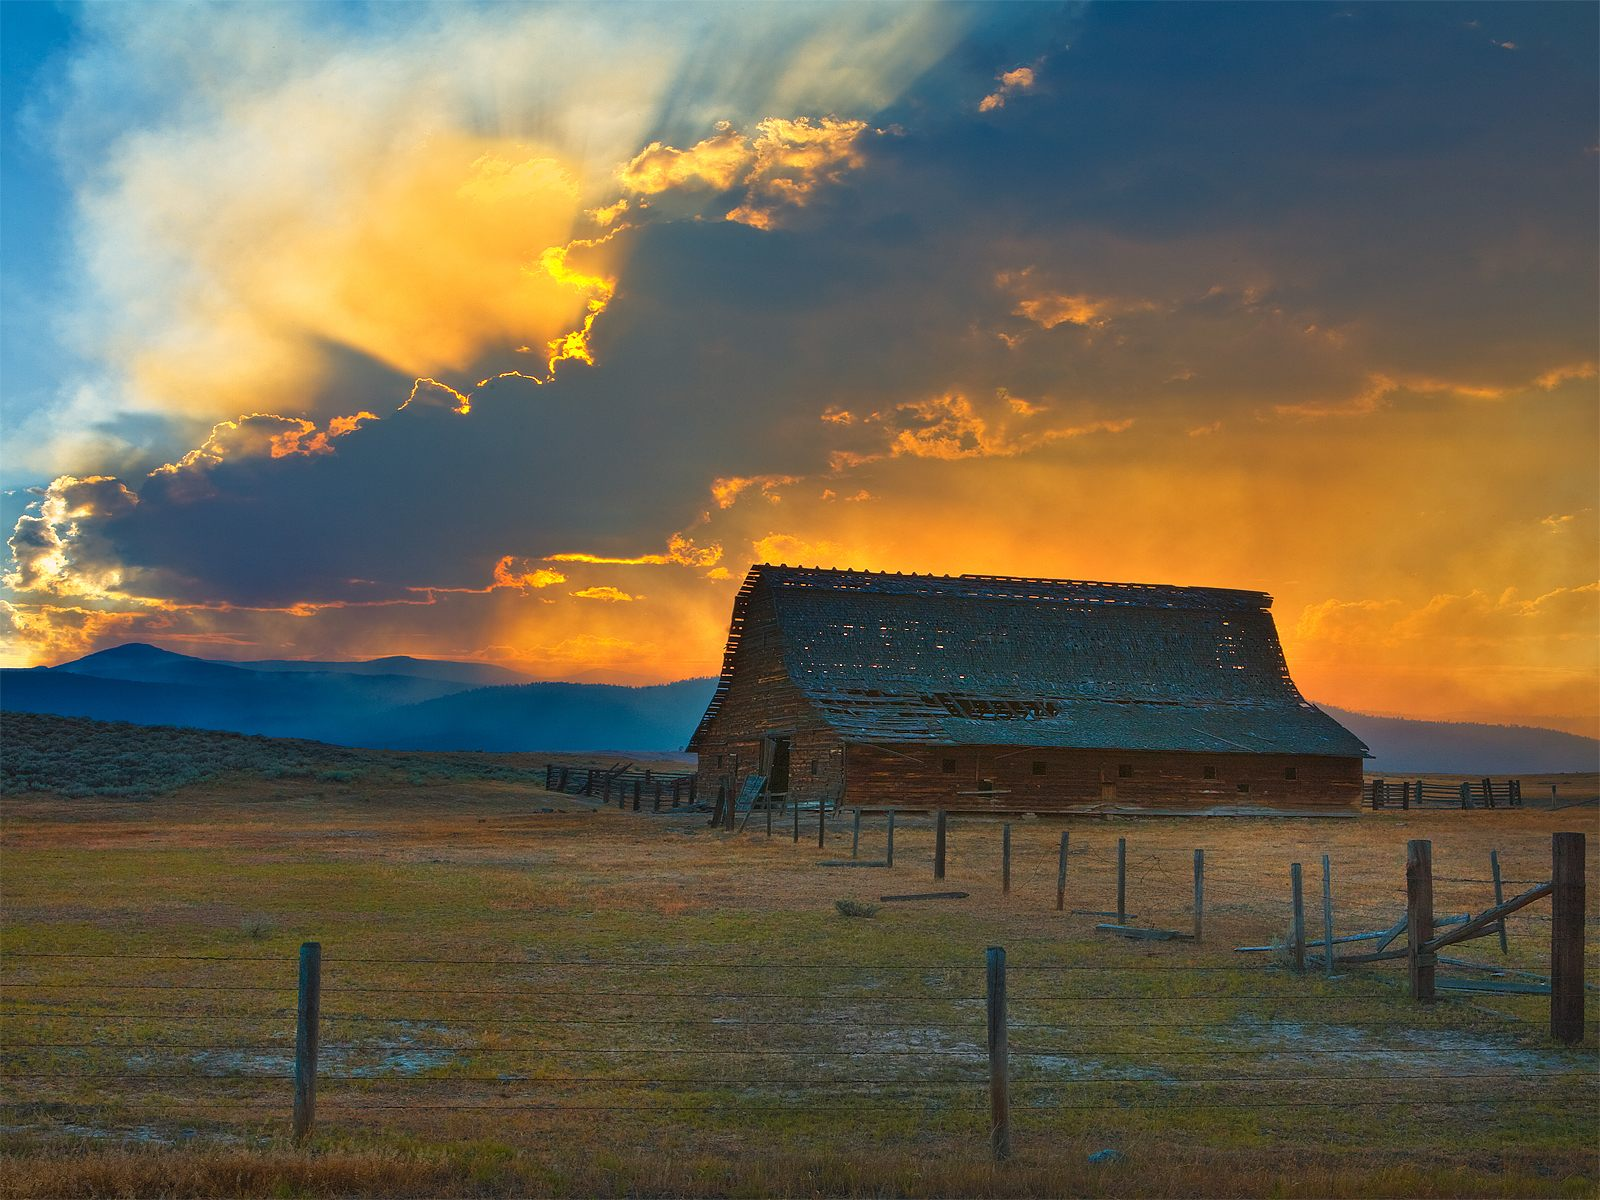 Sunset over the old barn   photography   Pinterest 1465